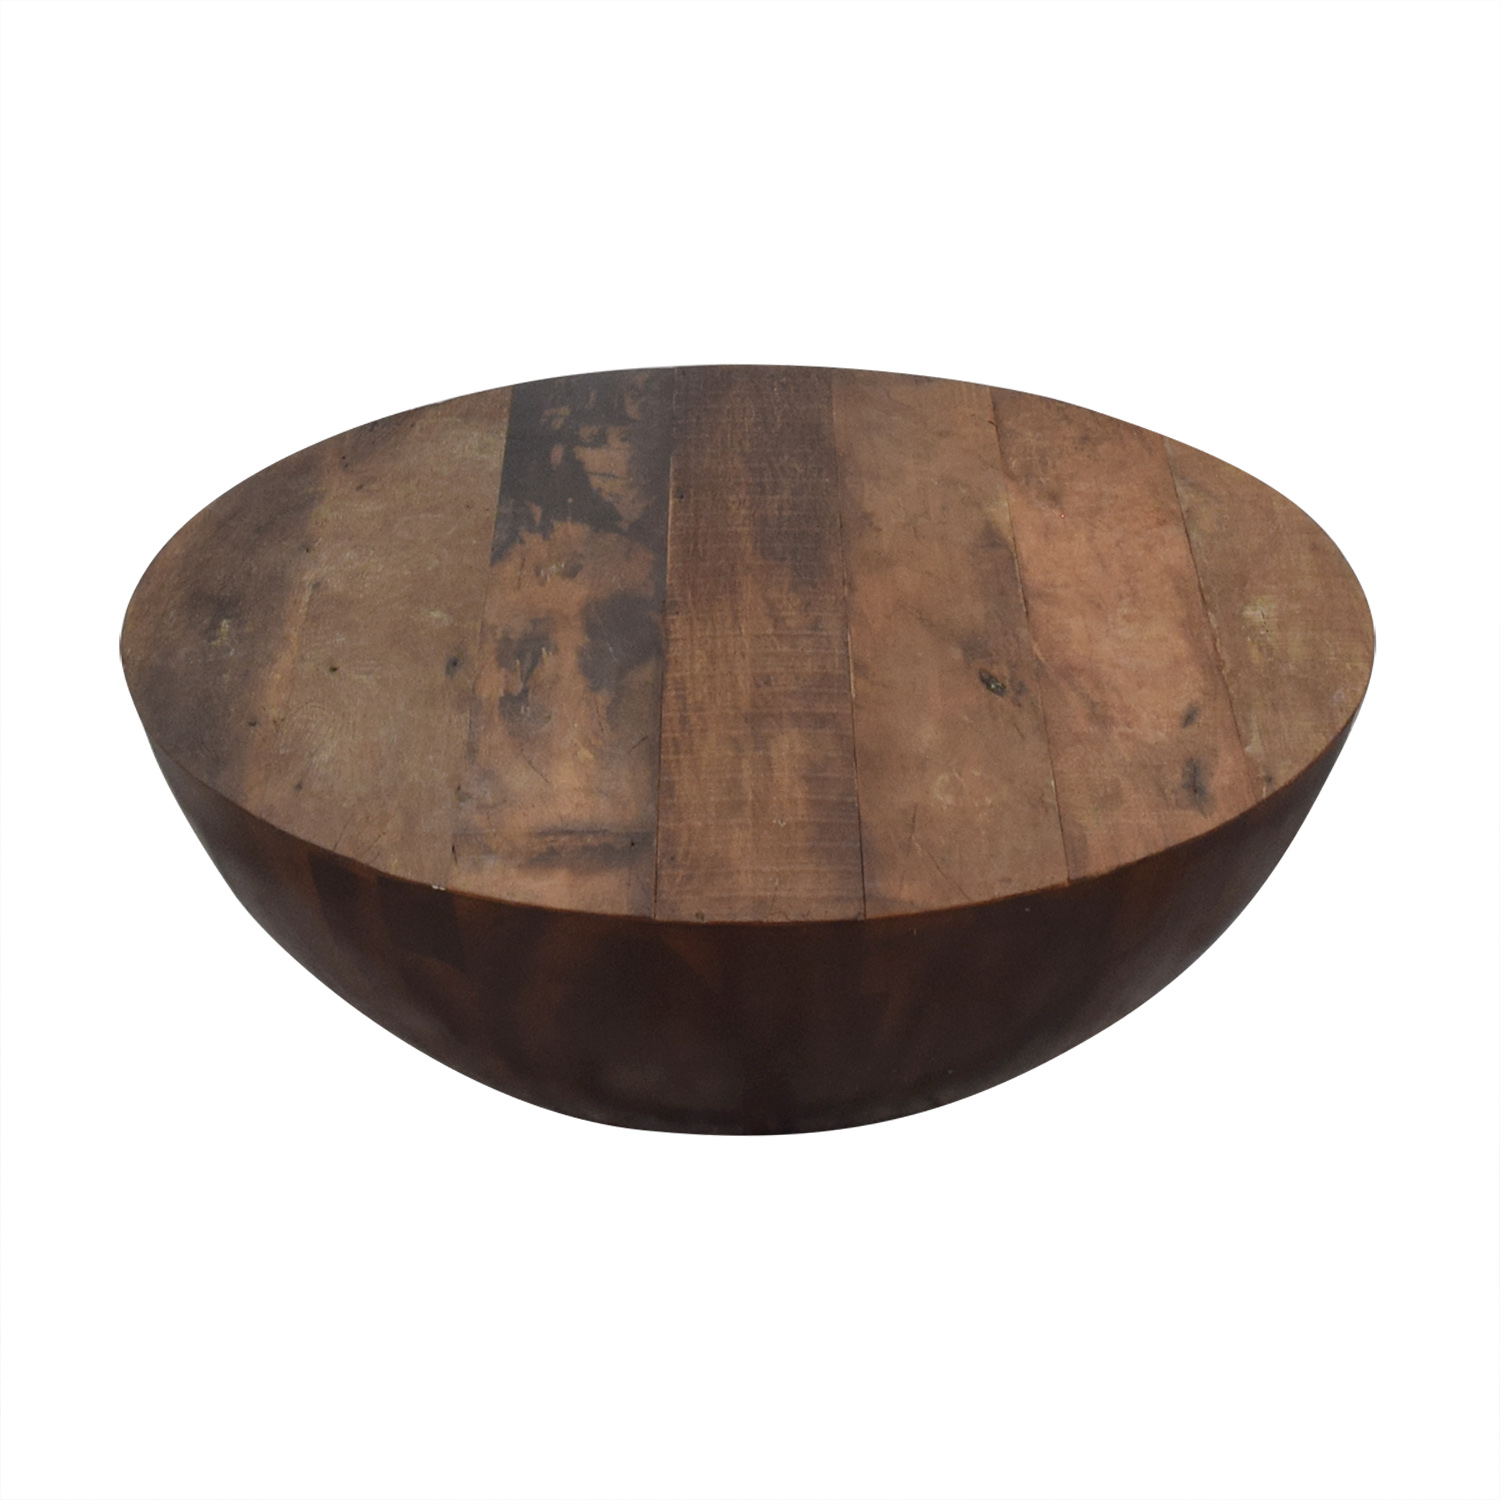 Anthropologie Anthropologie Semisfera Coffee Table second hand